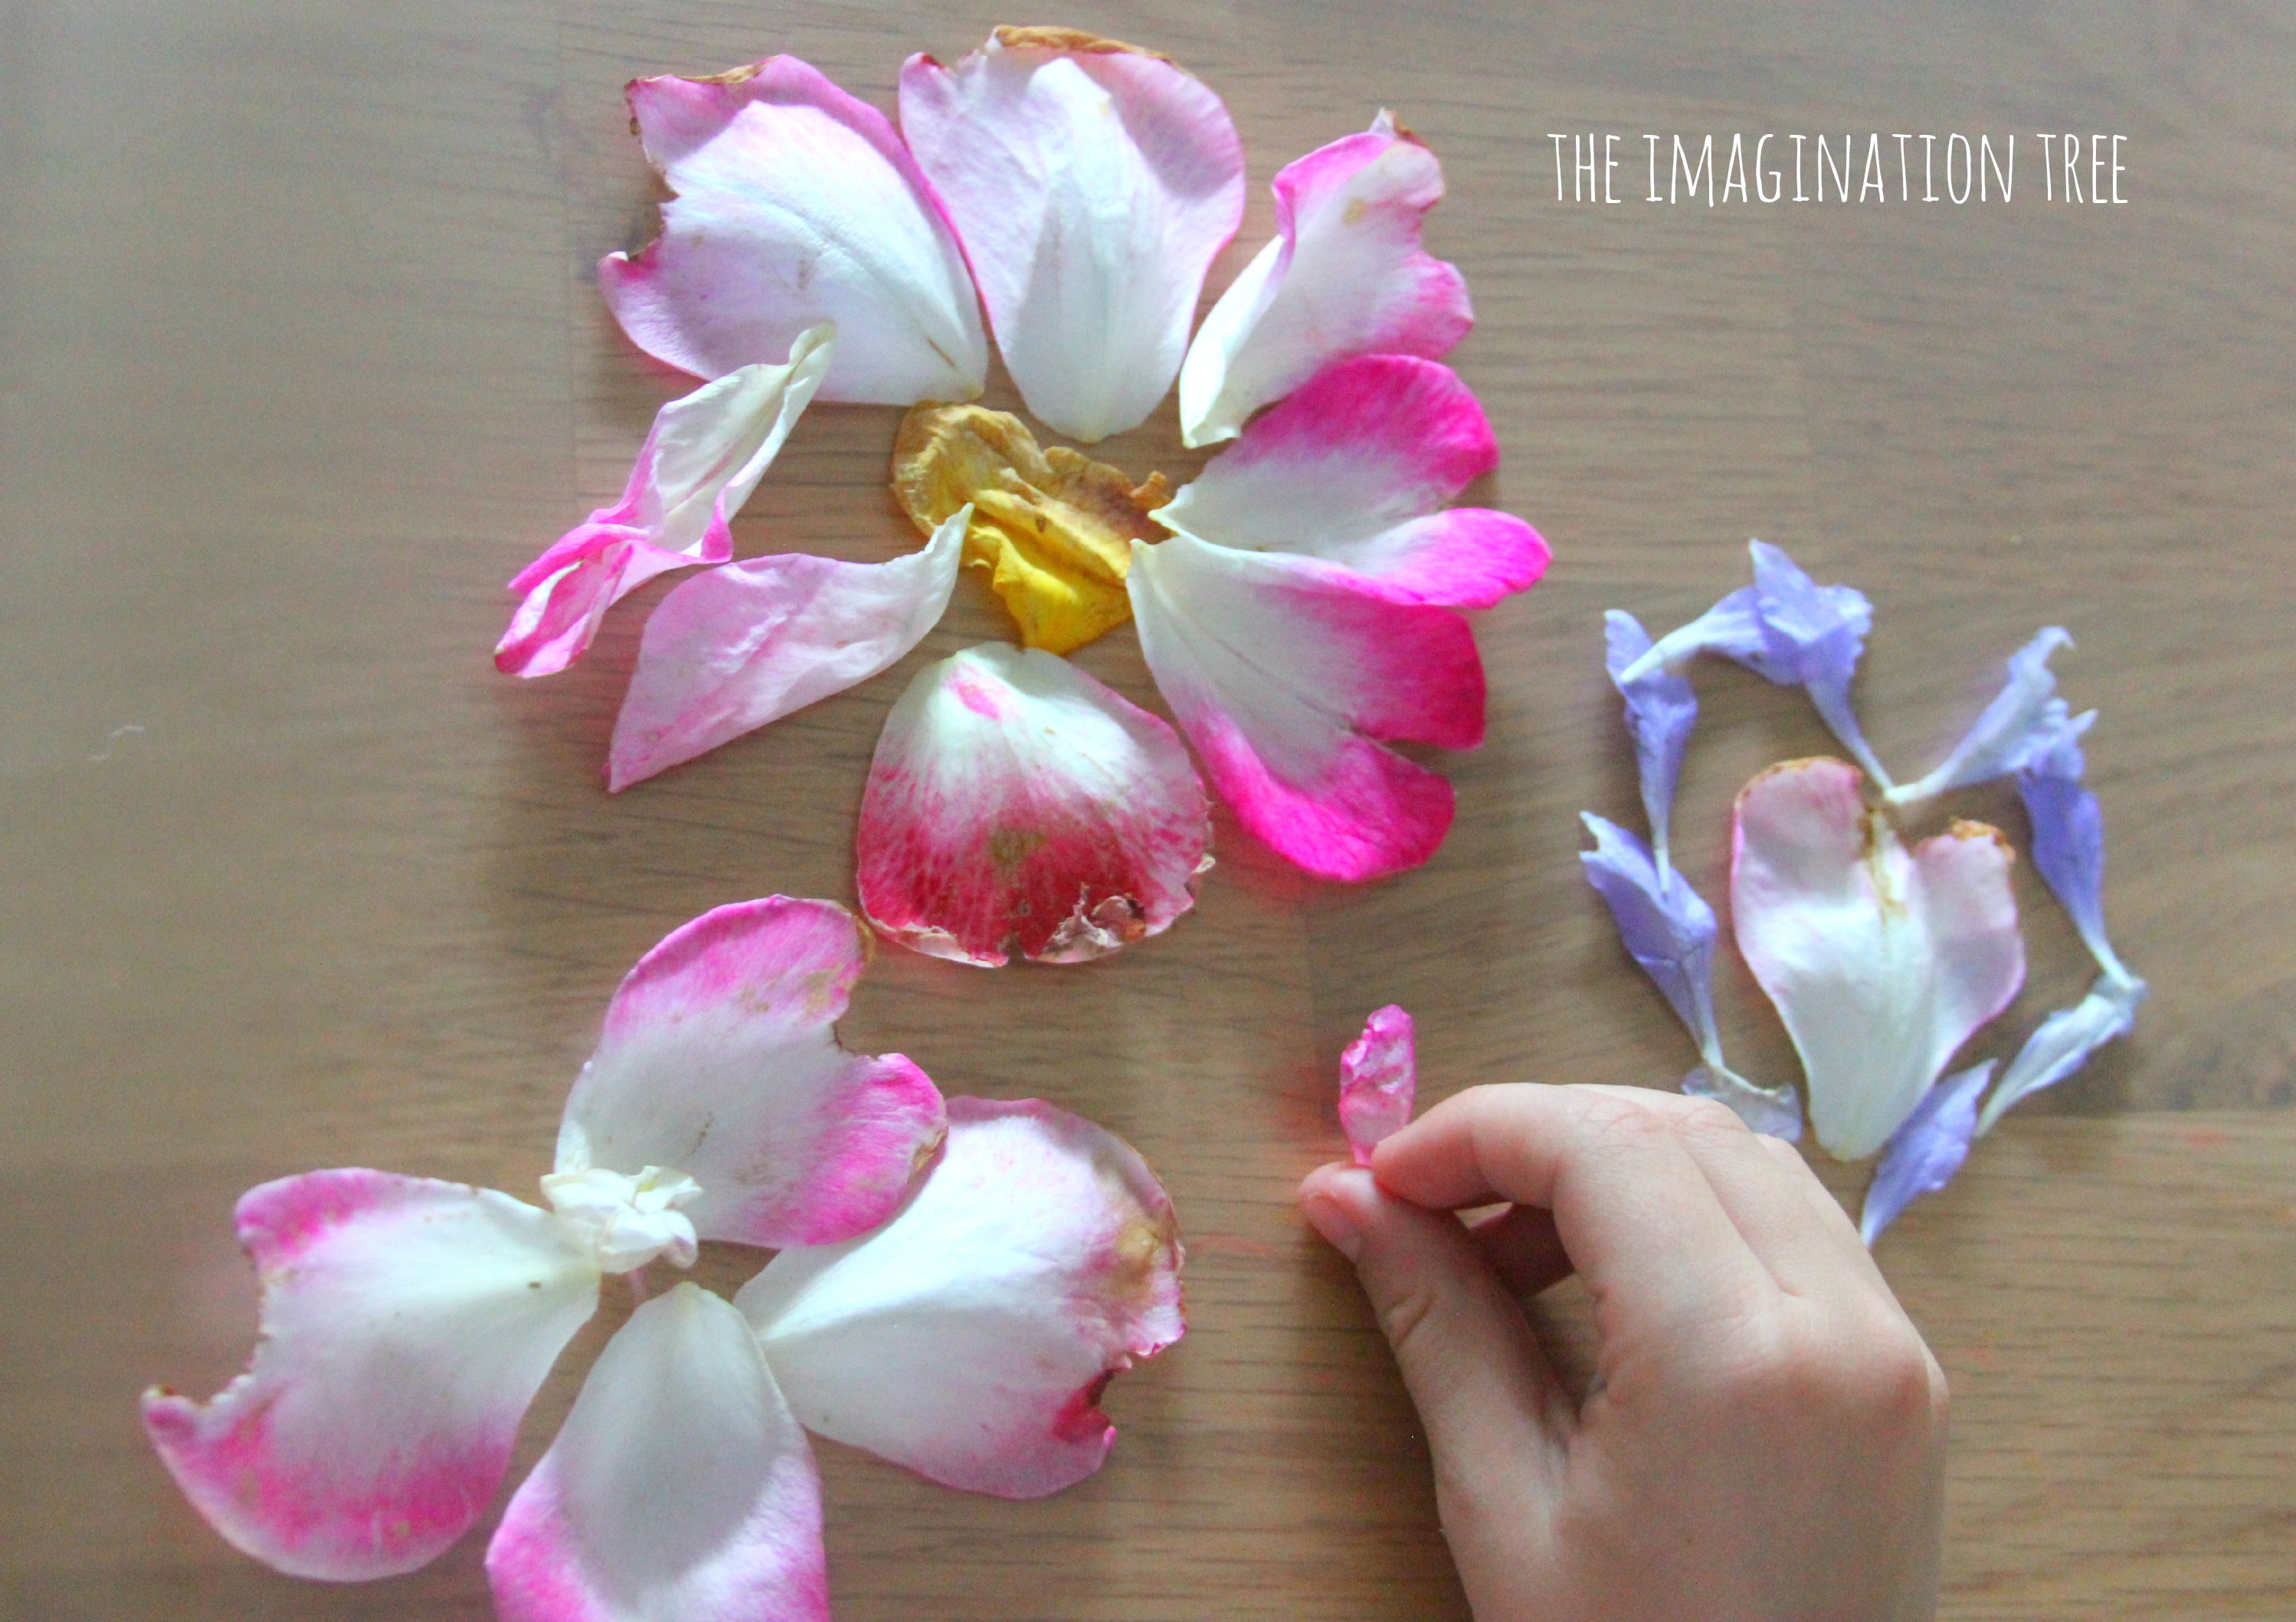 Laminated flowers crown and art the imagination tree flower petals crown izmirmasajfo